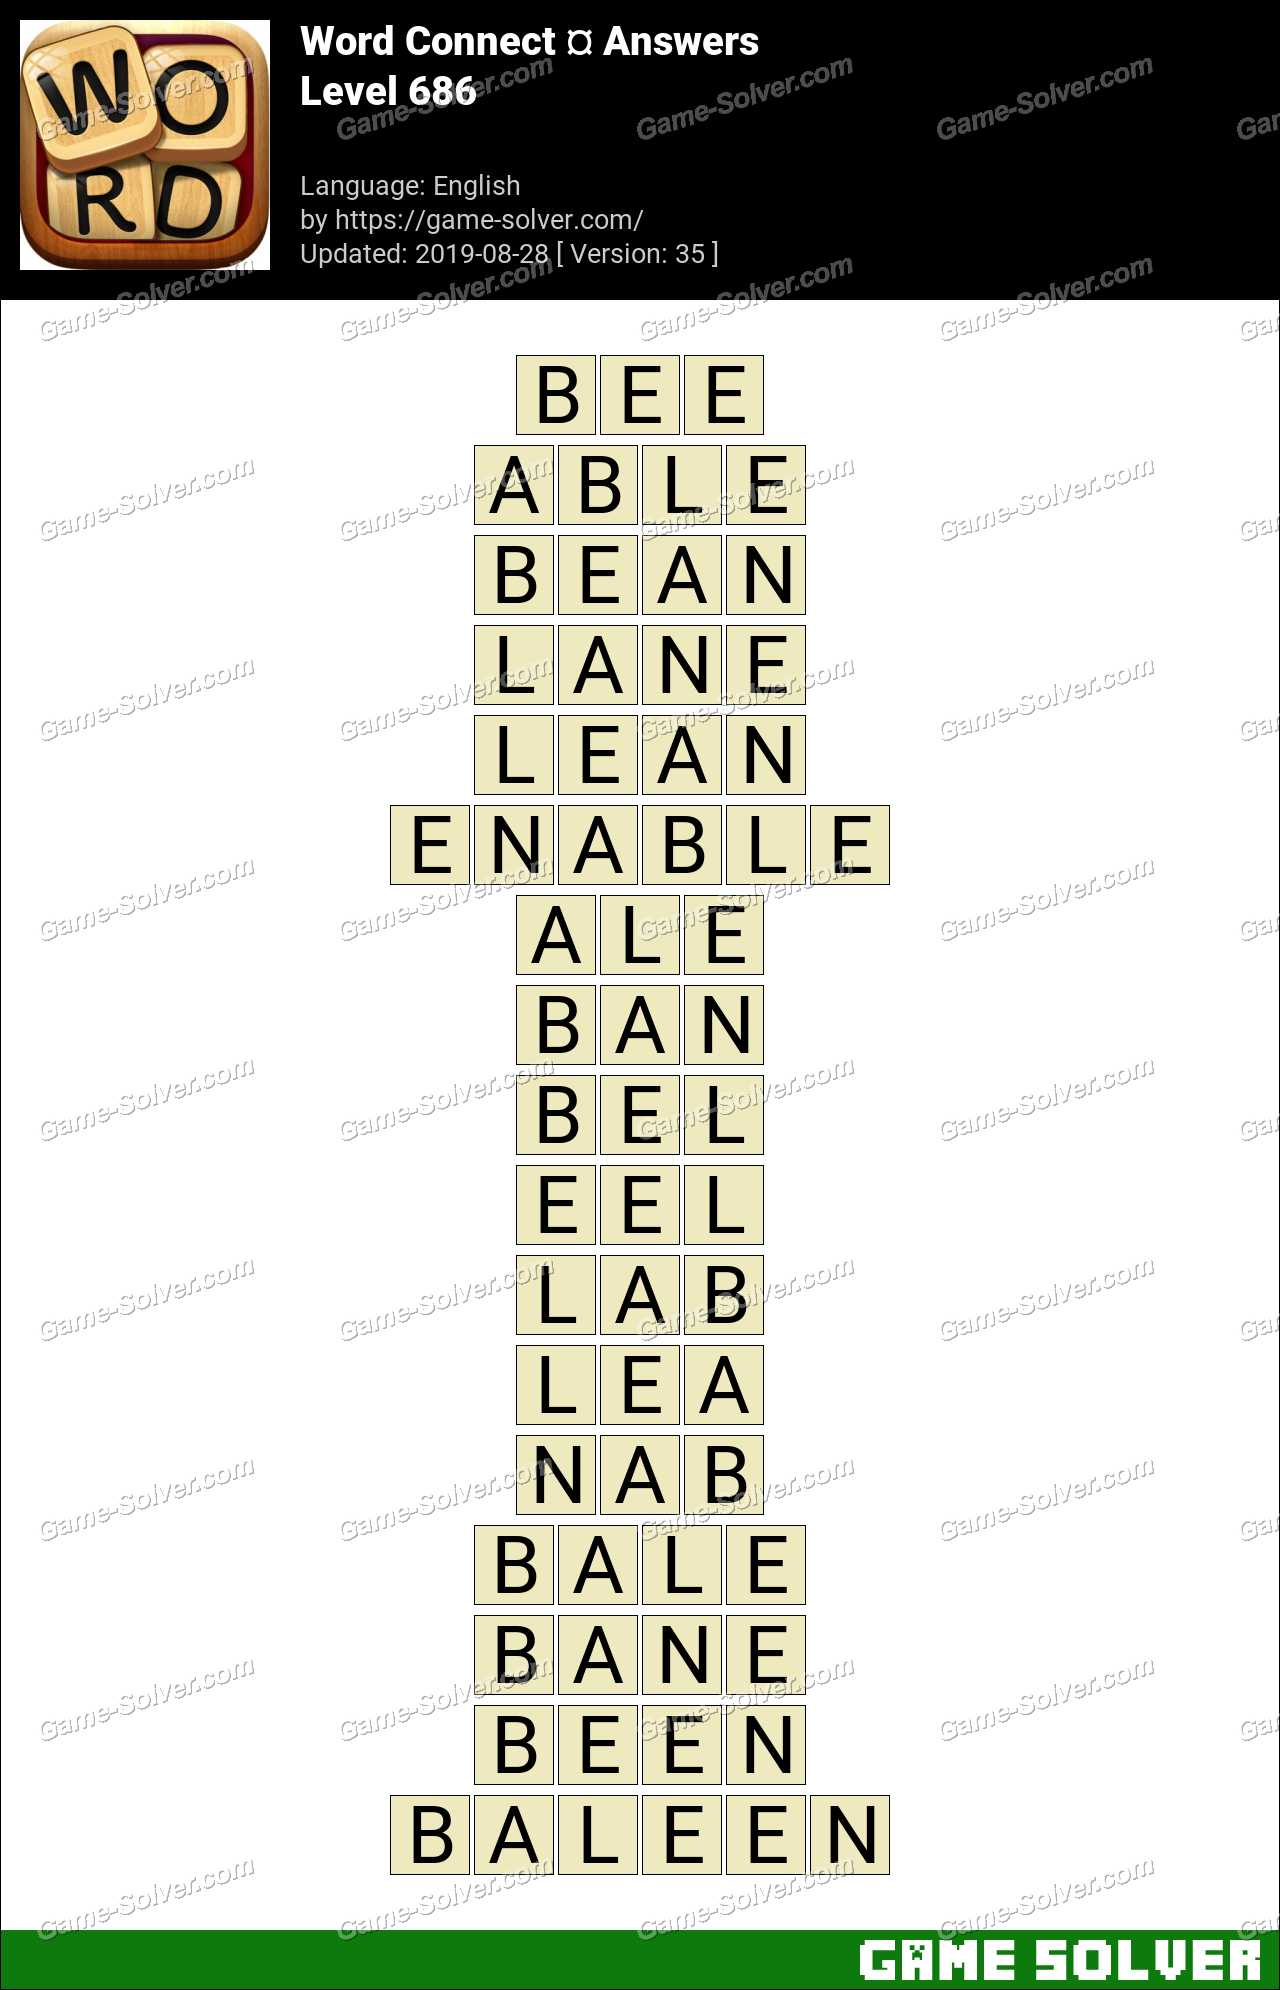 Word Connect Level 686 Answers